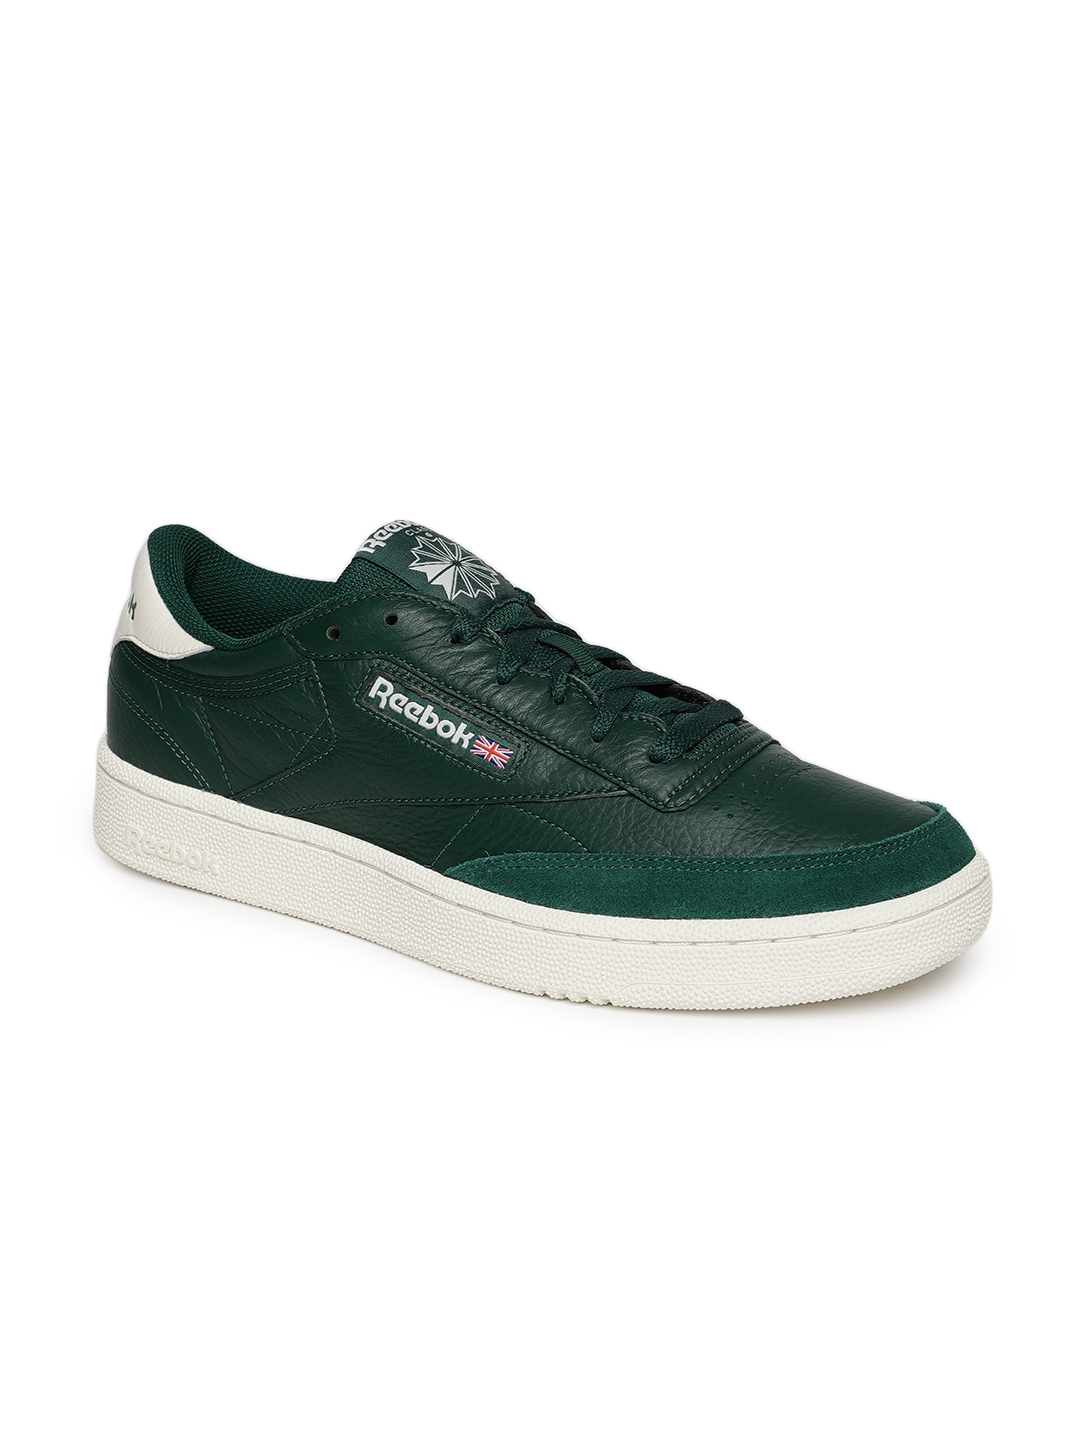 d60edaec81b Buy Reebok Classics Men Green CLUB C 85 MU Leather Sneakers - Casual ...